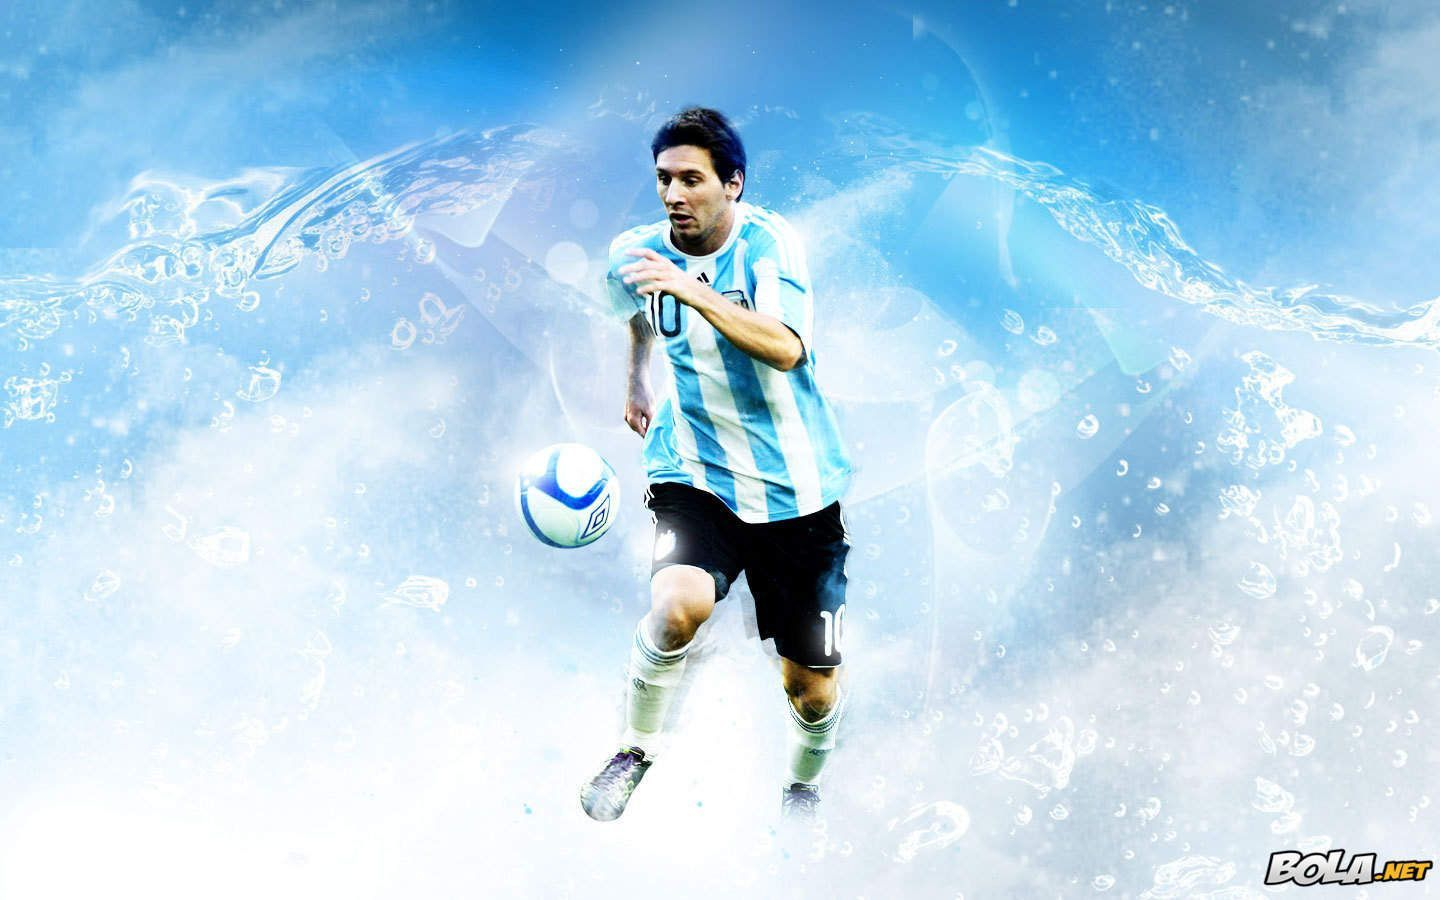 Lionel Messi Full HD Wallpaper Images  The Pics World 1440x900